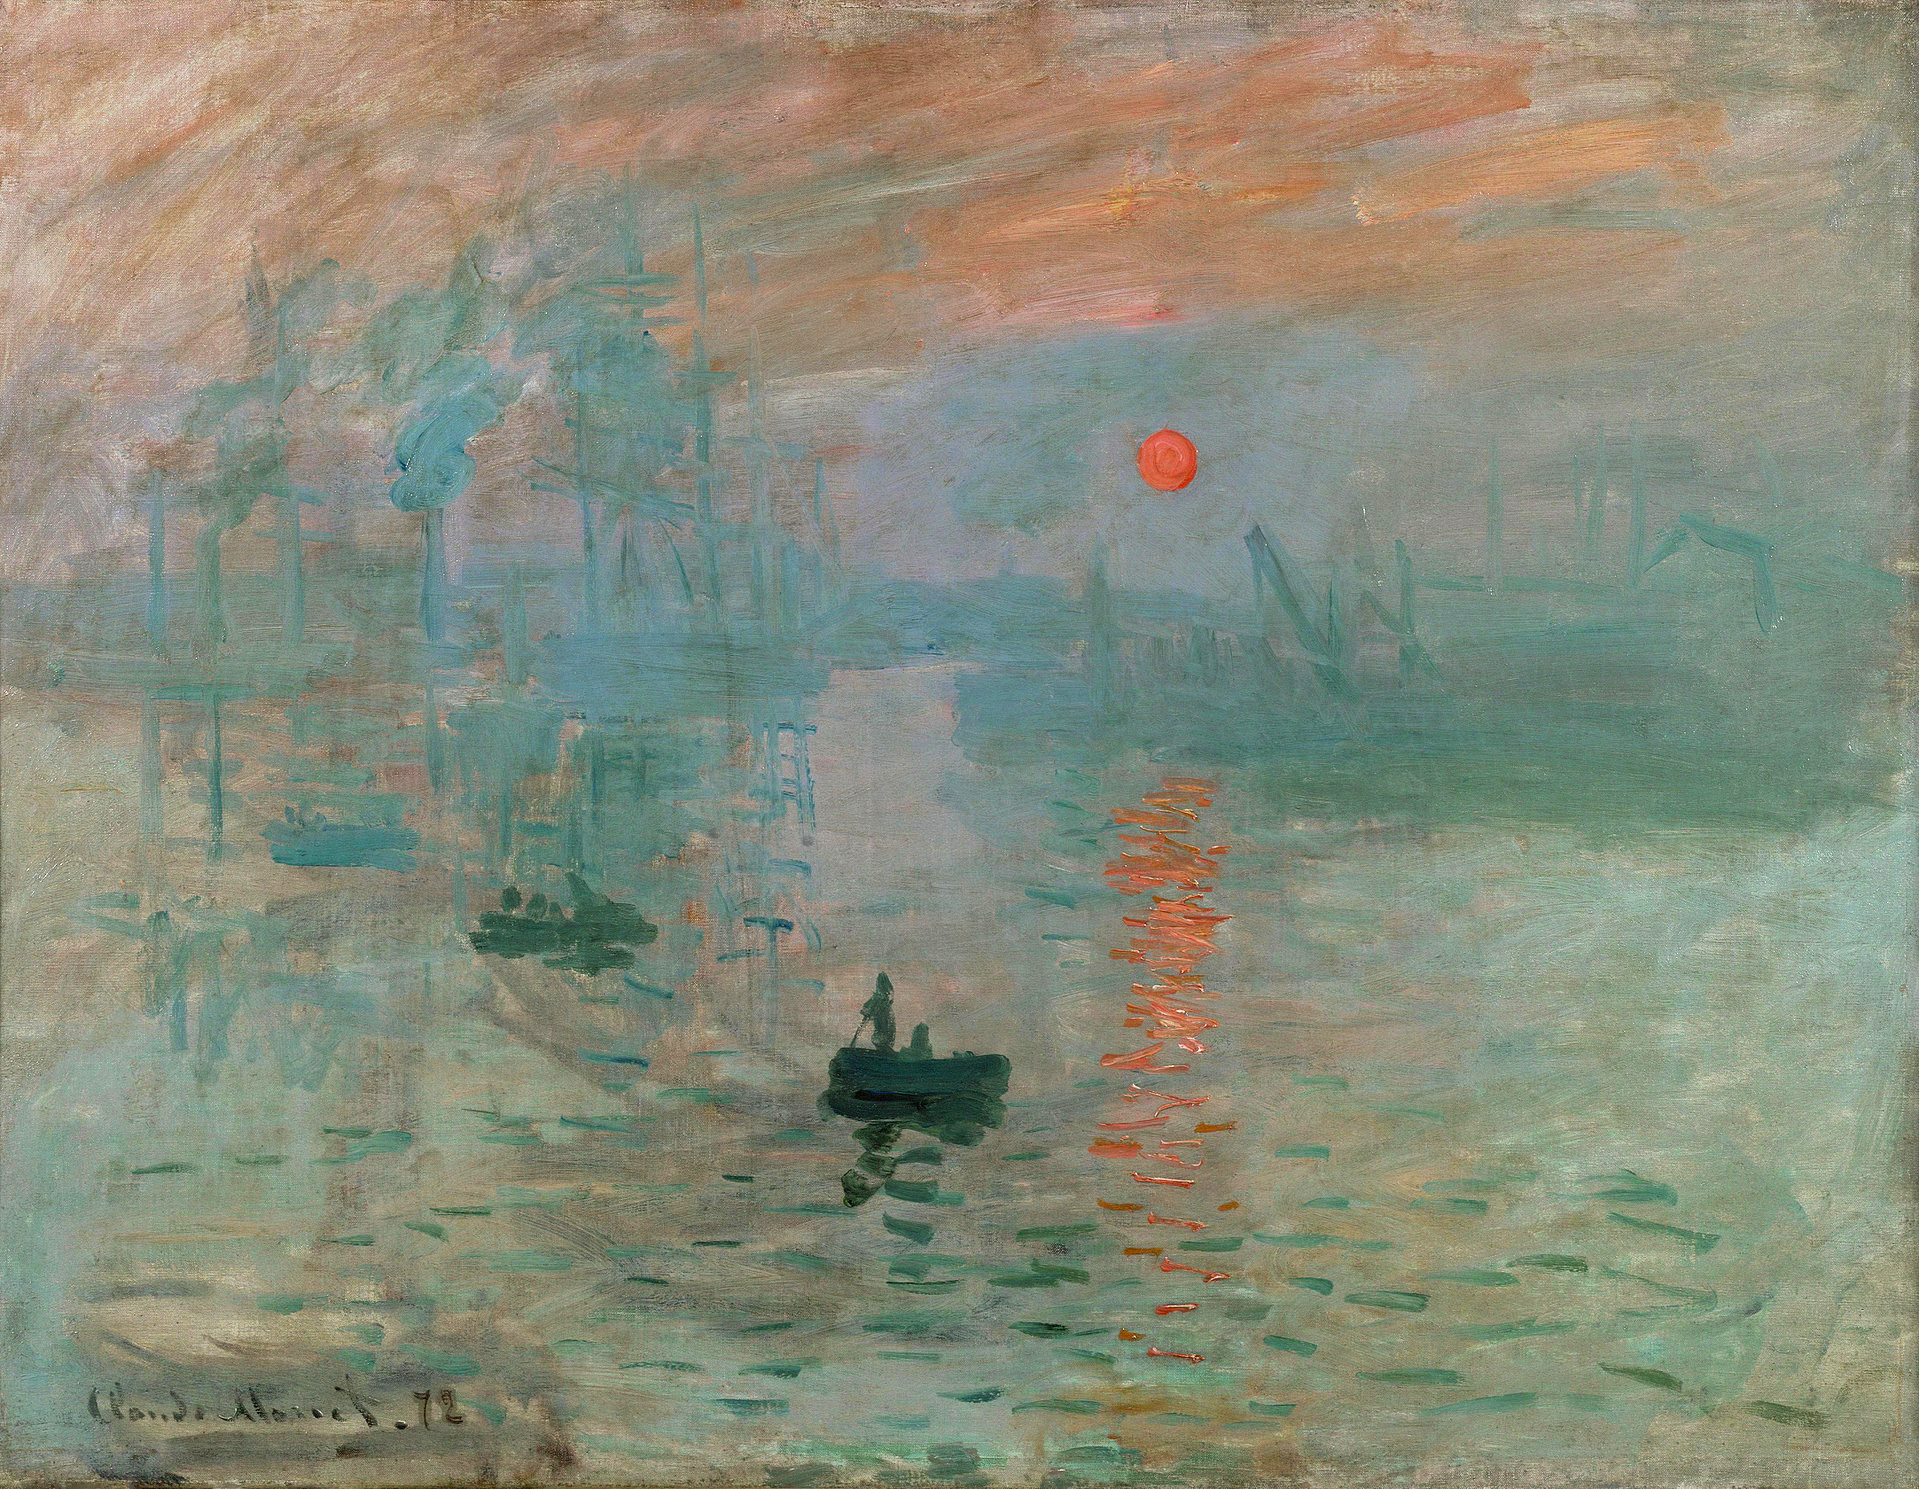 https://media.thisisgallery.com/wp-content/uploads/2018/12/claudemonet_01.jpg